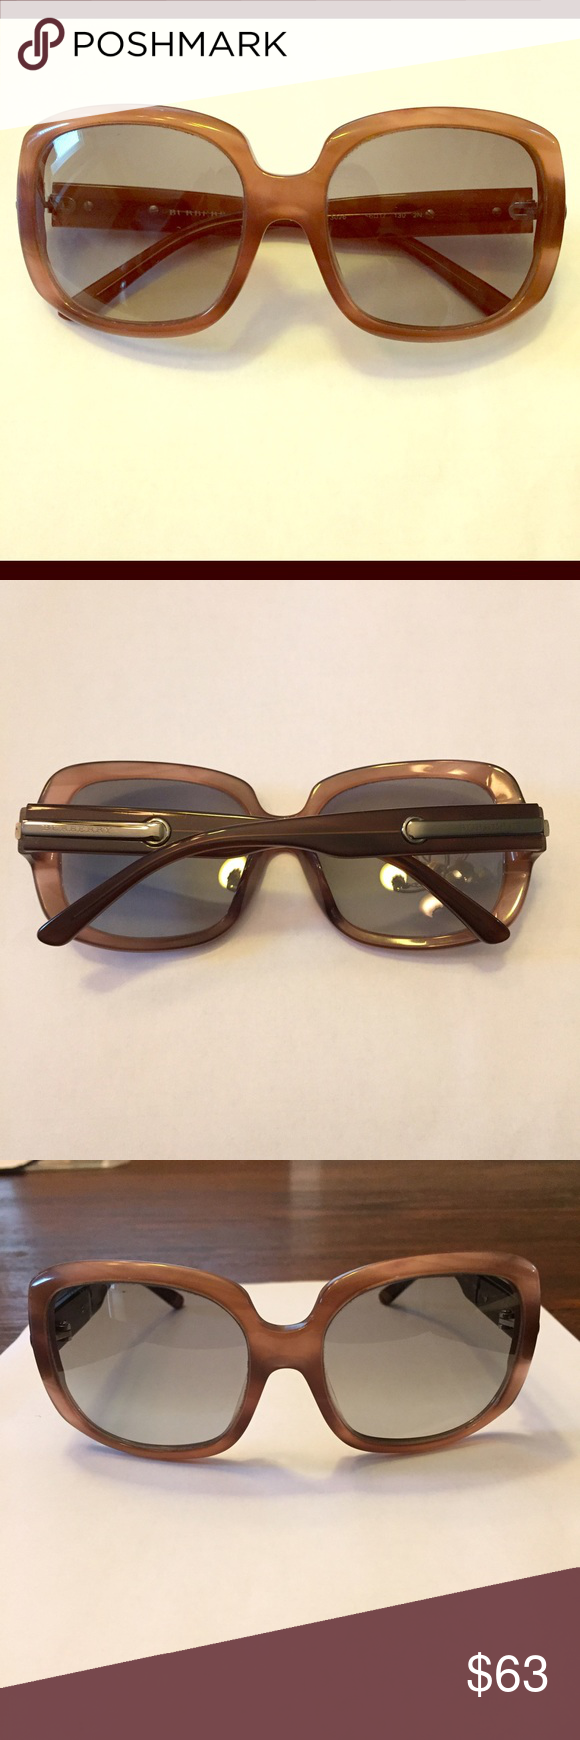 Burberry sunglasses Burberry sunglasses in great condition.  Comes with case.  These have been worn and have minor scuffing on lenses, hardly visible though. Burberry Accessories Sunglasses